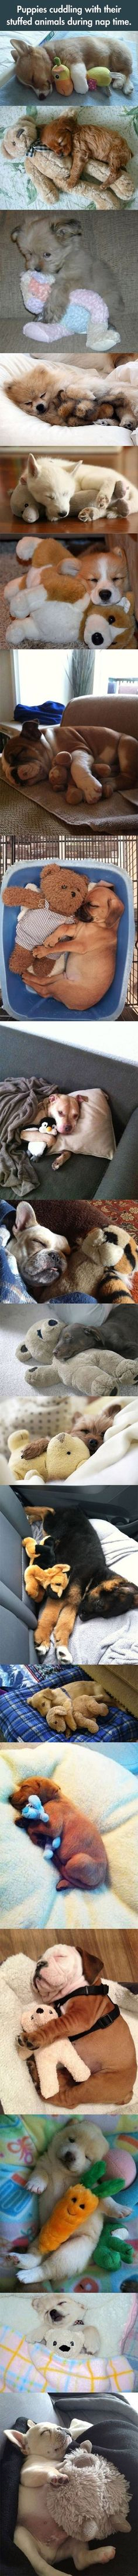 Puppies cuddling with their stuffed animals during nap time.